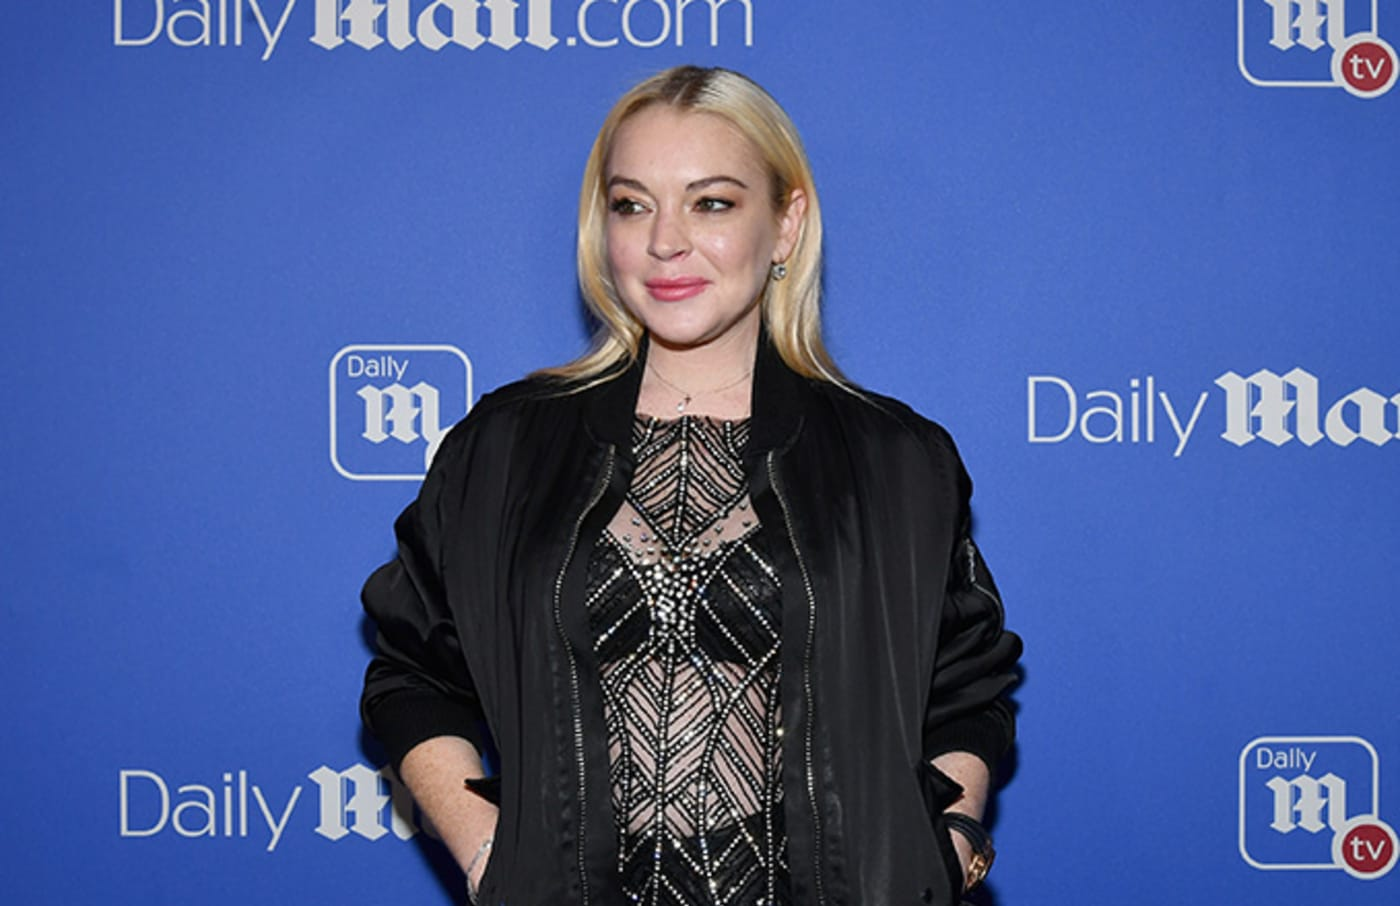 This is a photo of Lindsay Lohan.